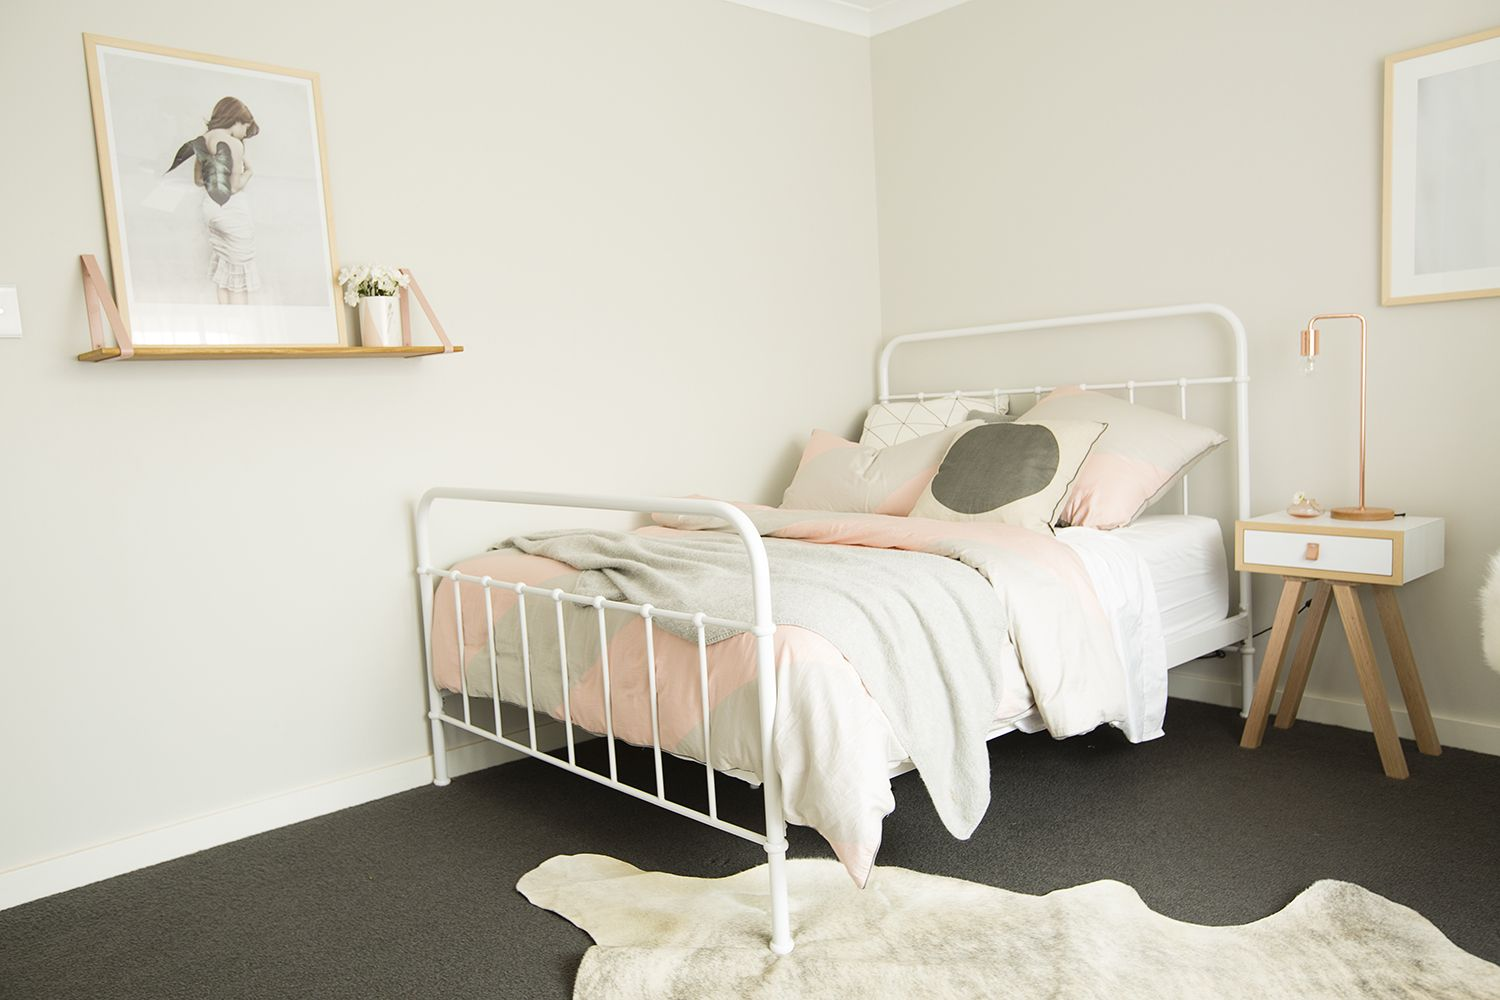 Panting g spare bedroom pinterest bedrooms and